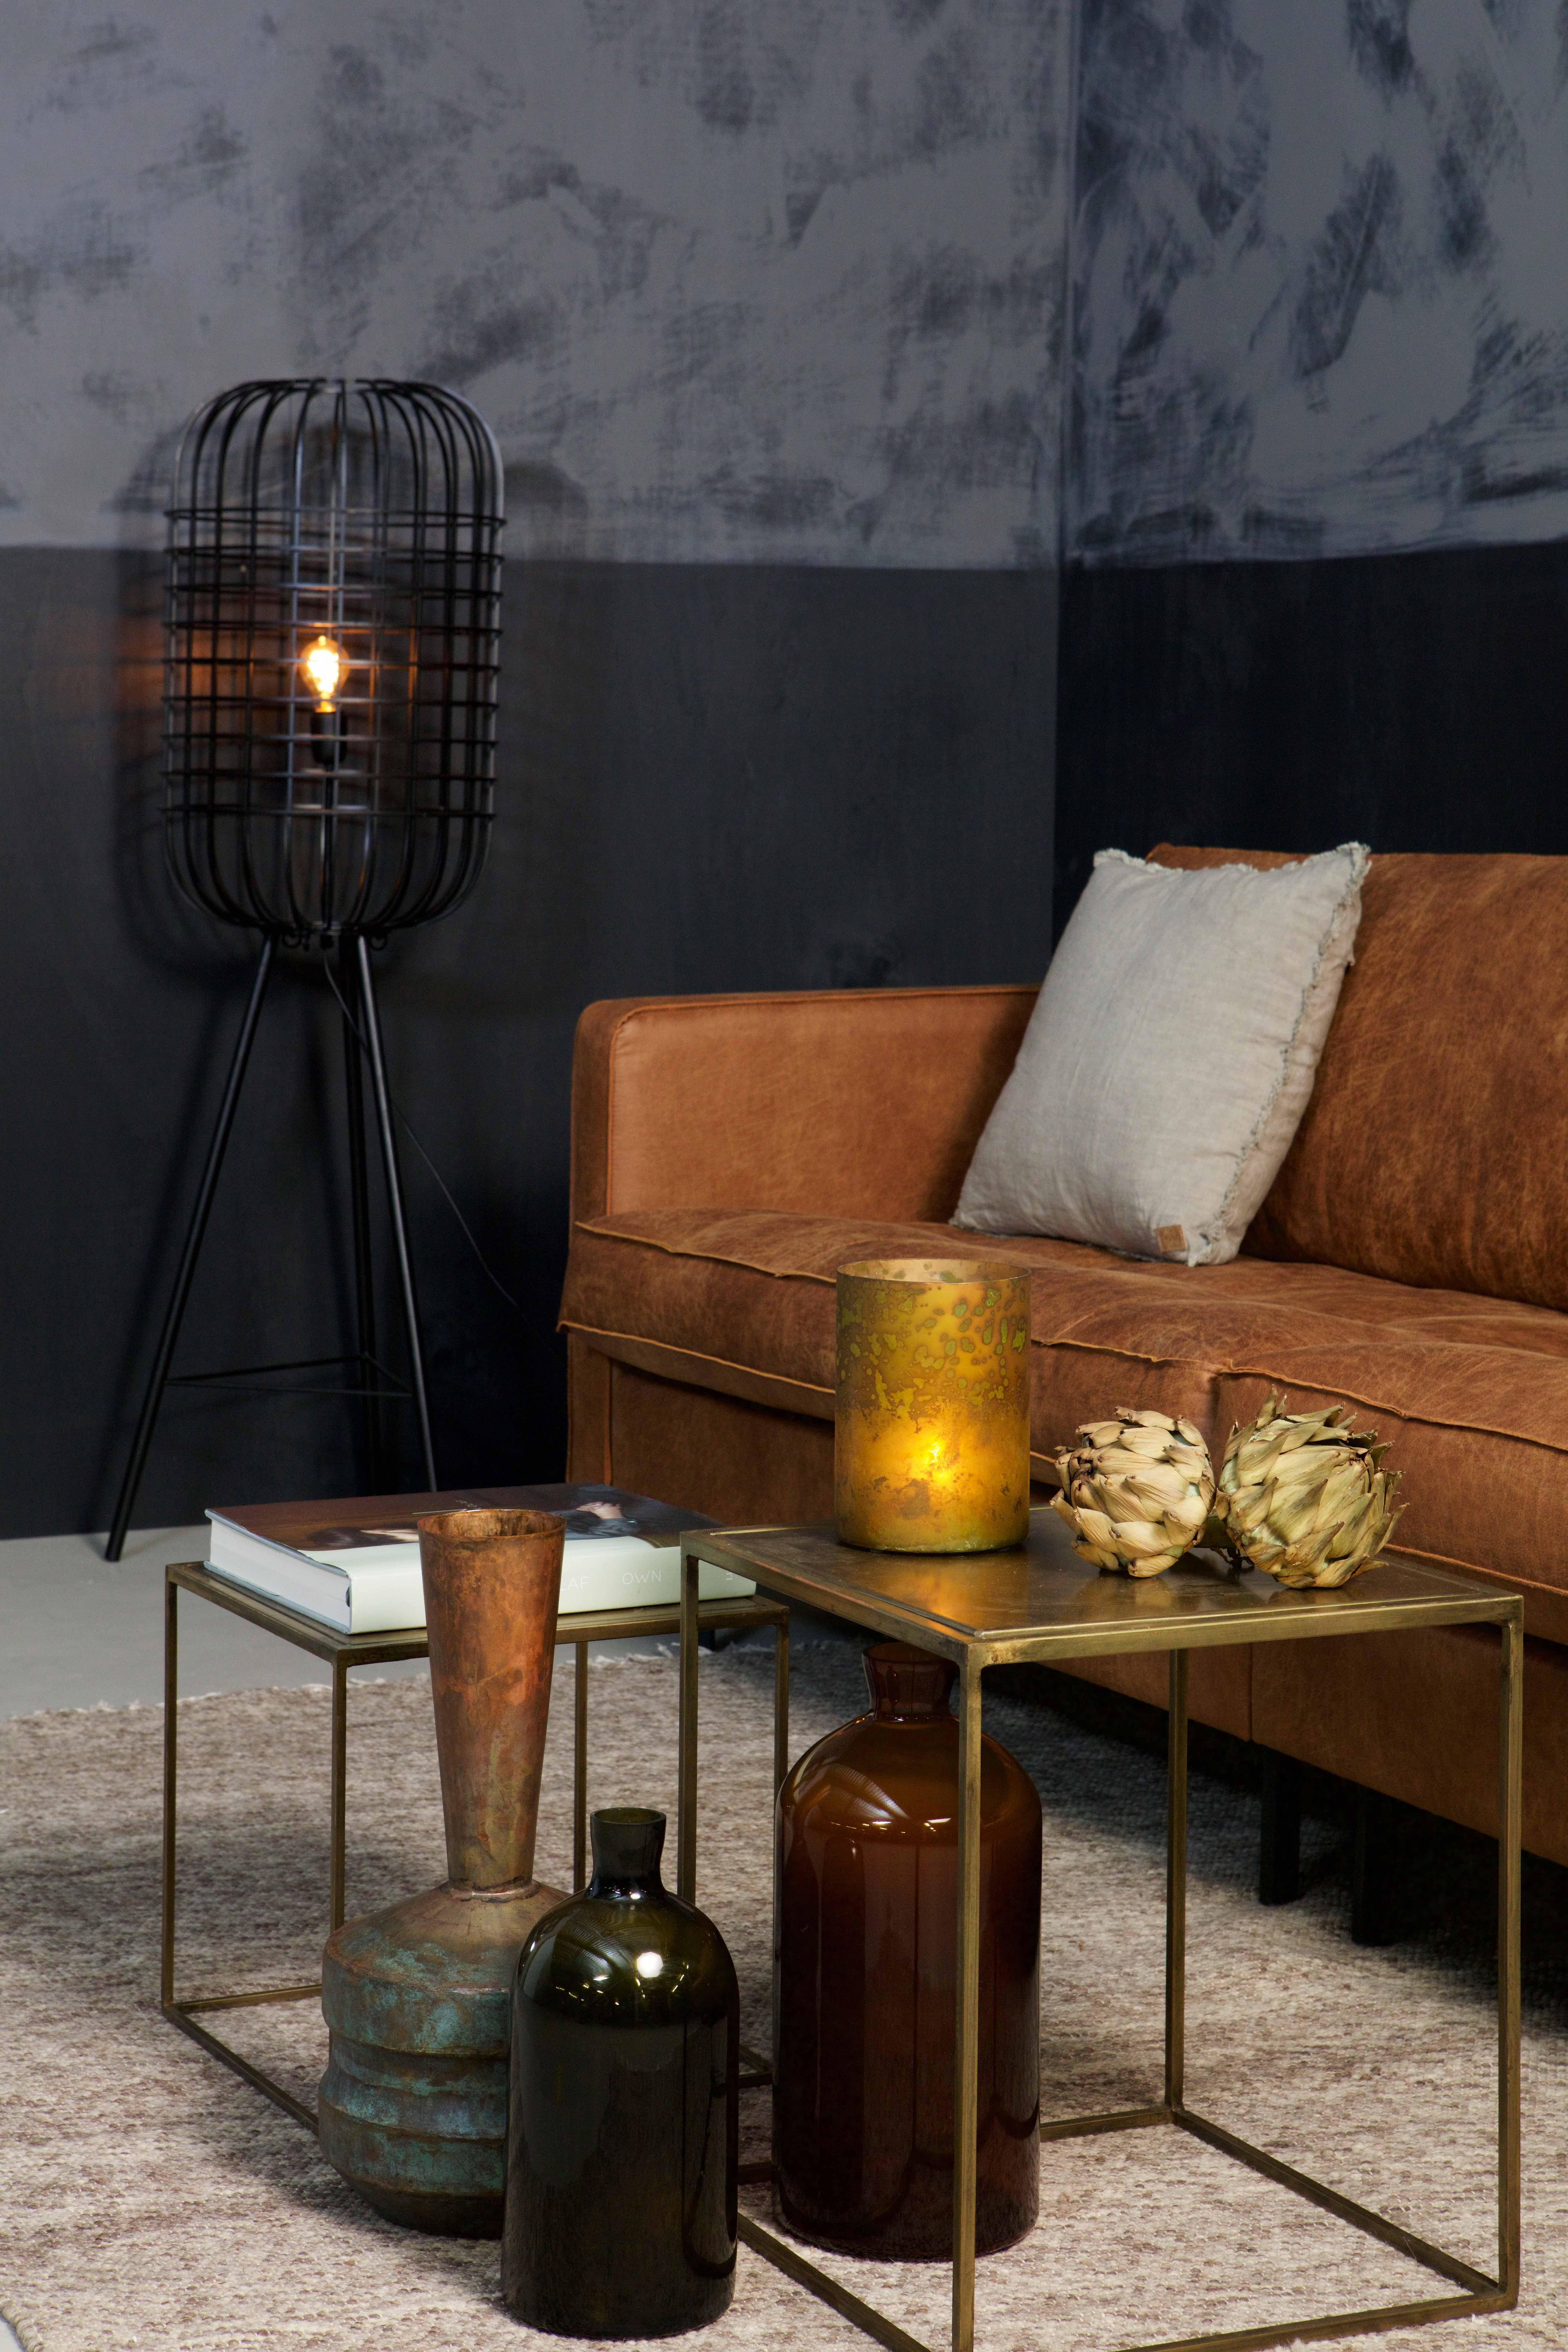 Sofa Rodeo The Rodeo Classic Leather Sofa In Cognac With The Metallic Brass